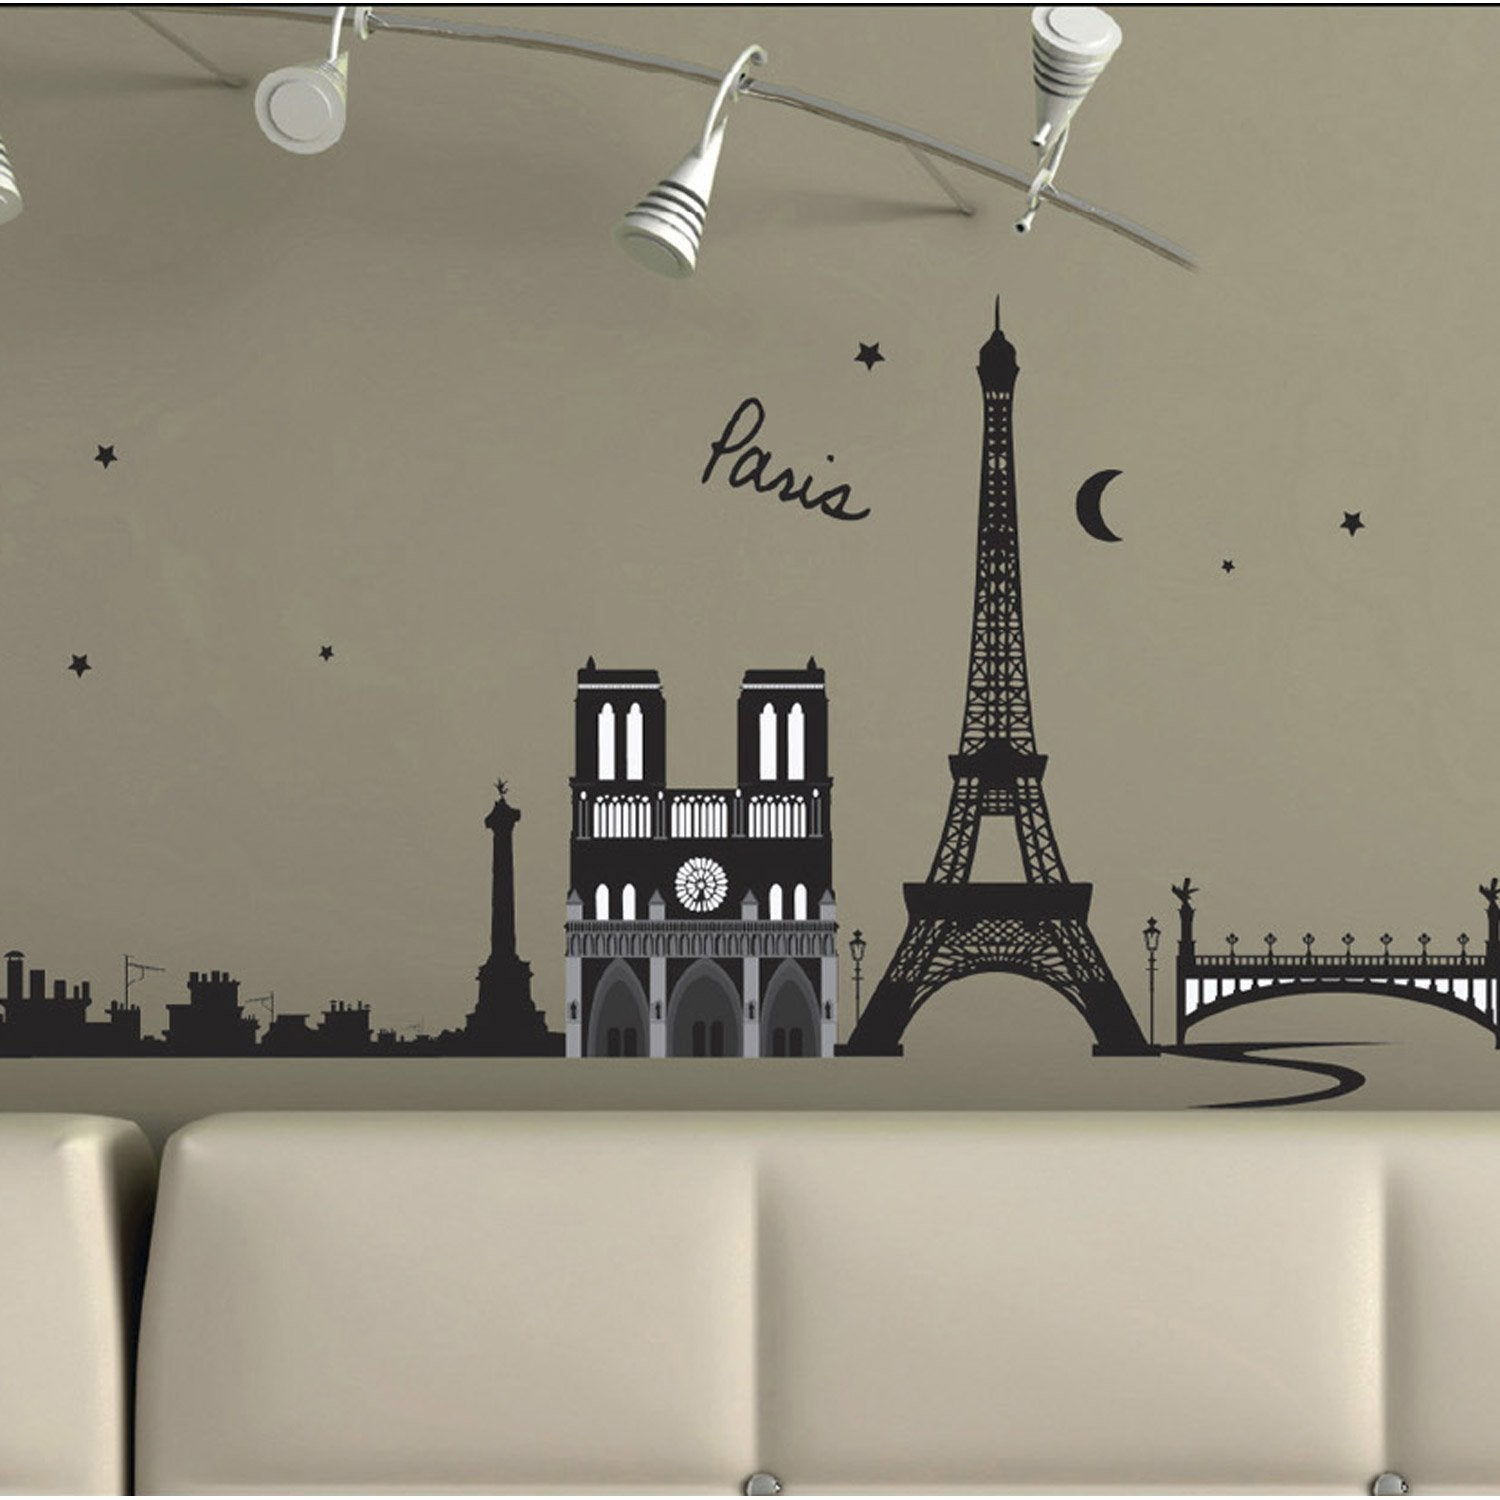 Sticker paris france 50 cm x 70 cm leroy merlin - Leroy merlin paris 13 ...